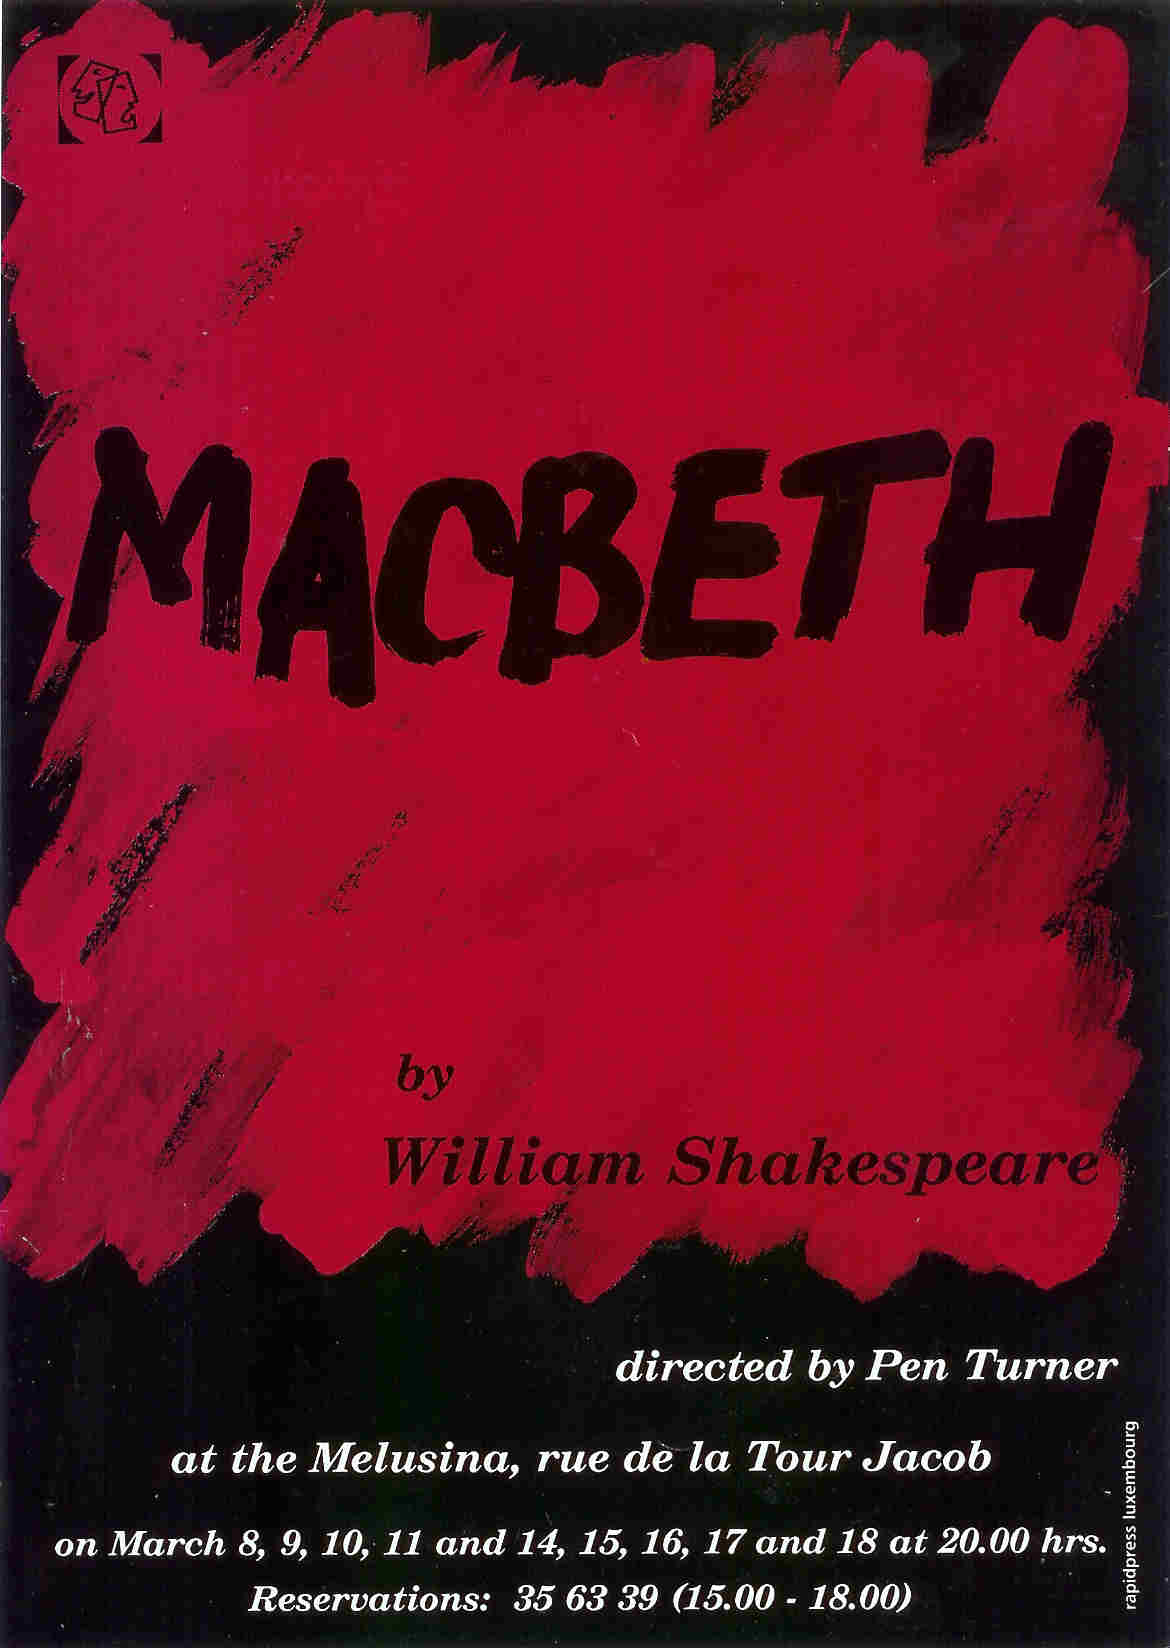 https://www.nwtc.lu/media/Show_Archives/1993_Macbeth/macbeth_93_flyer.jpg